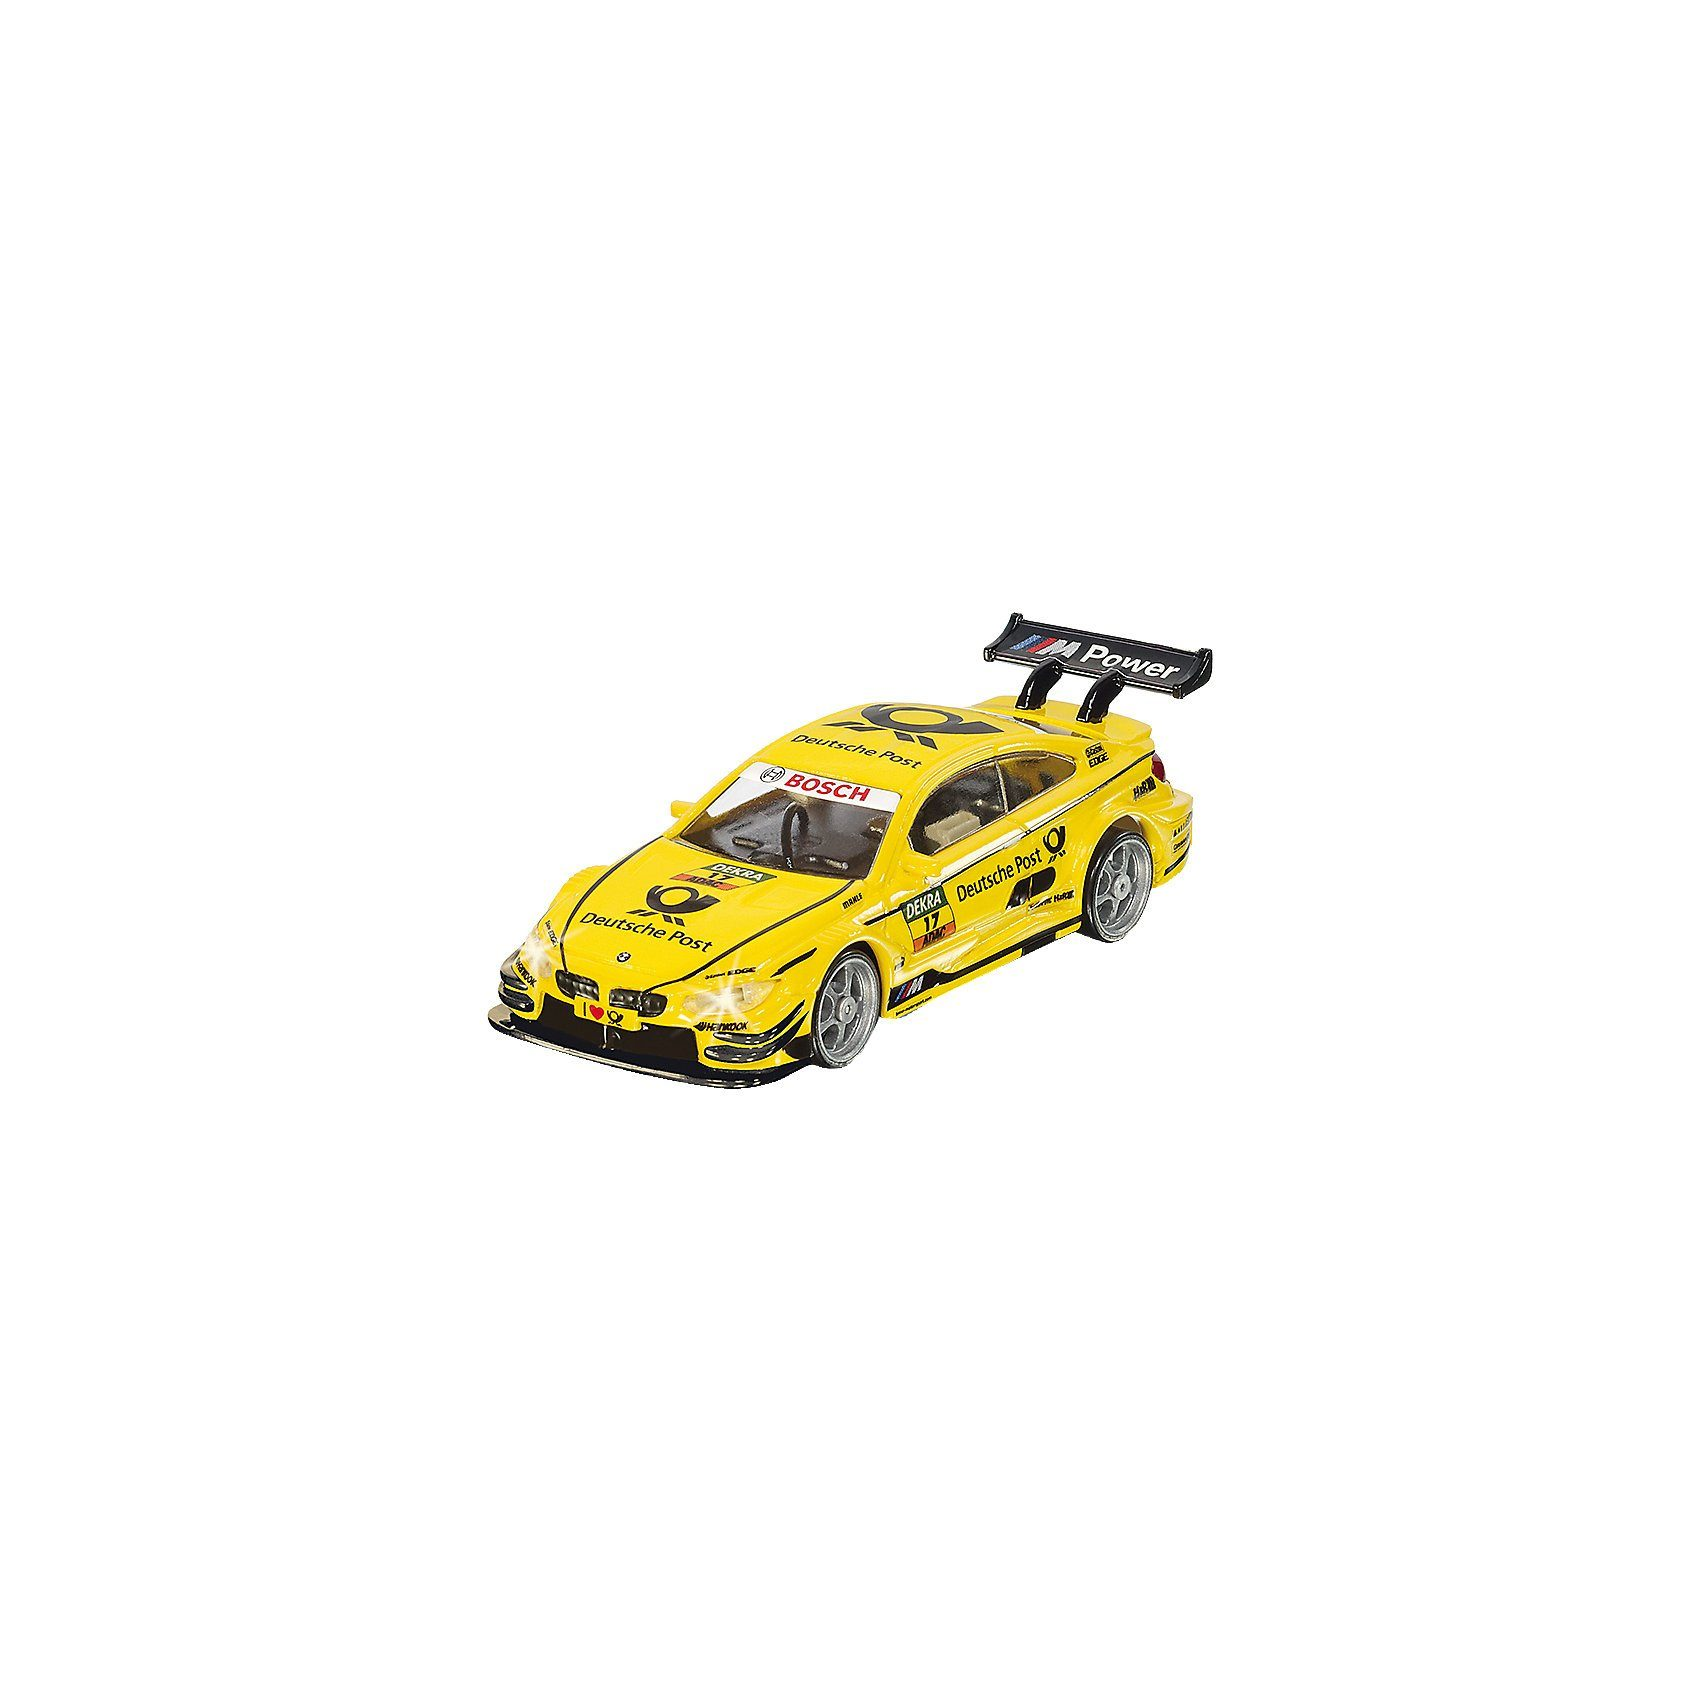 SIKU 6826 Racing BMW M4 DTM Set 1:43